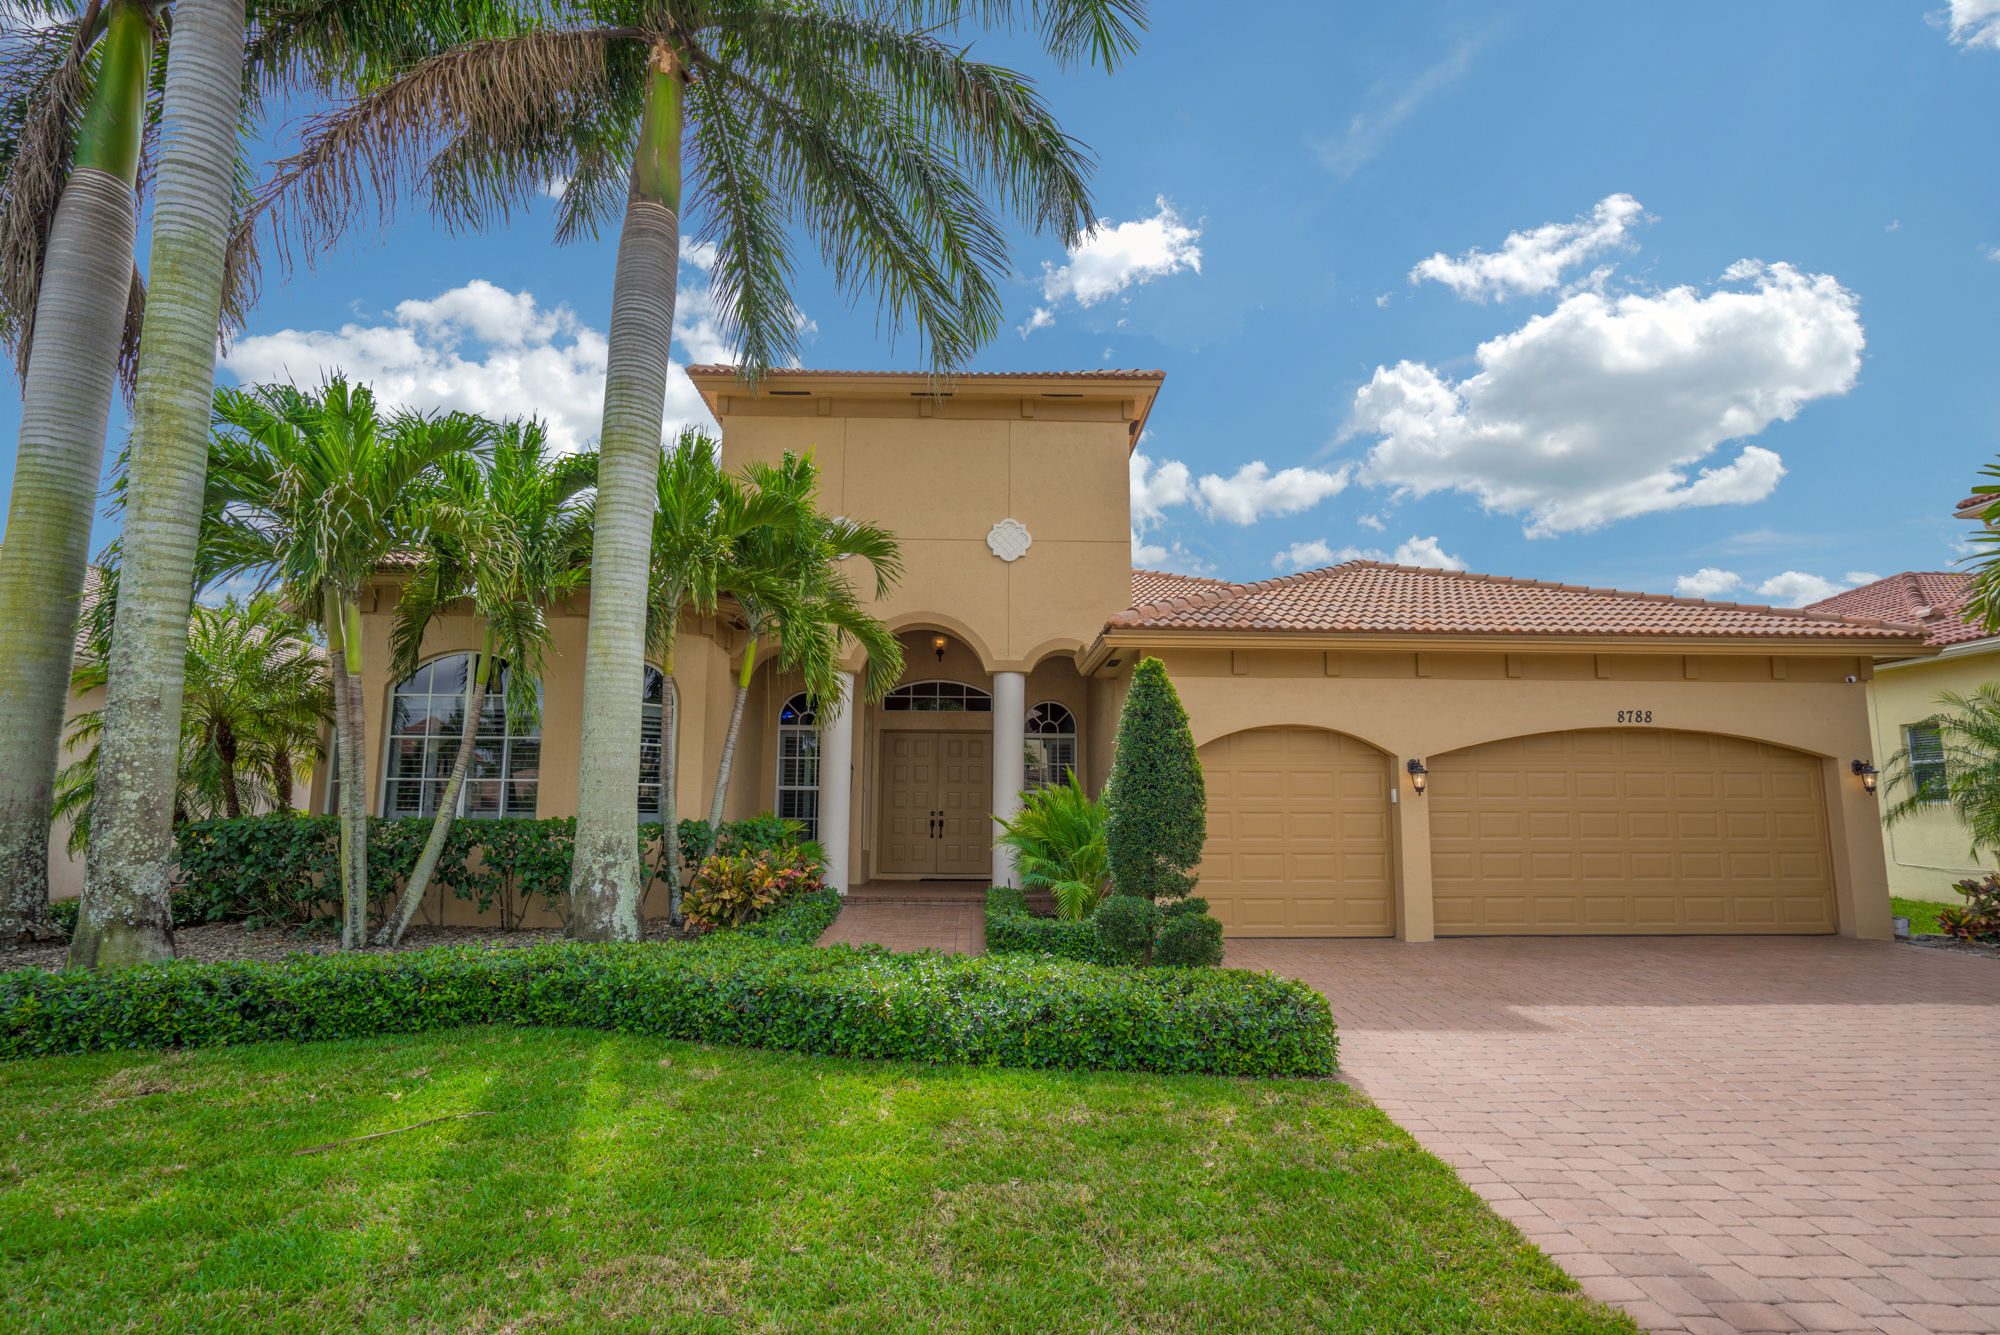 Luxurios home in exclusive san messina lake worth for Bathrooms plus lake worth fl